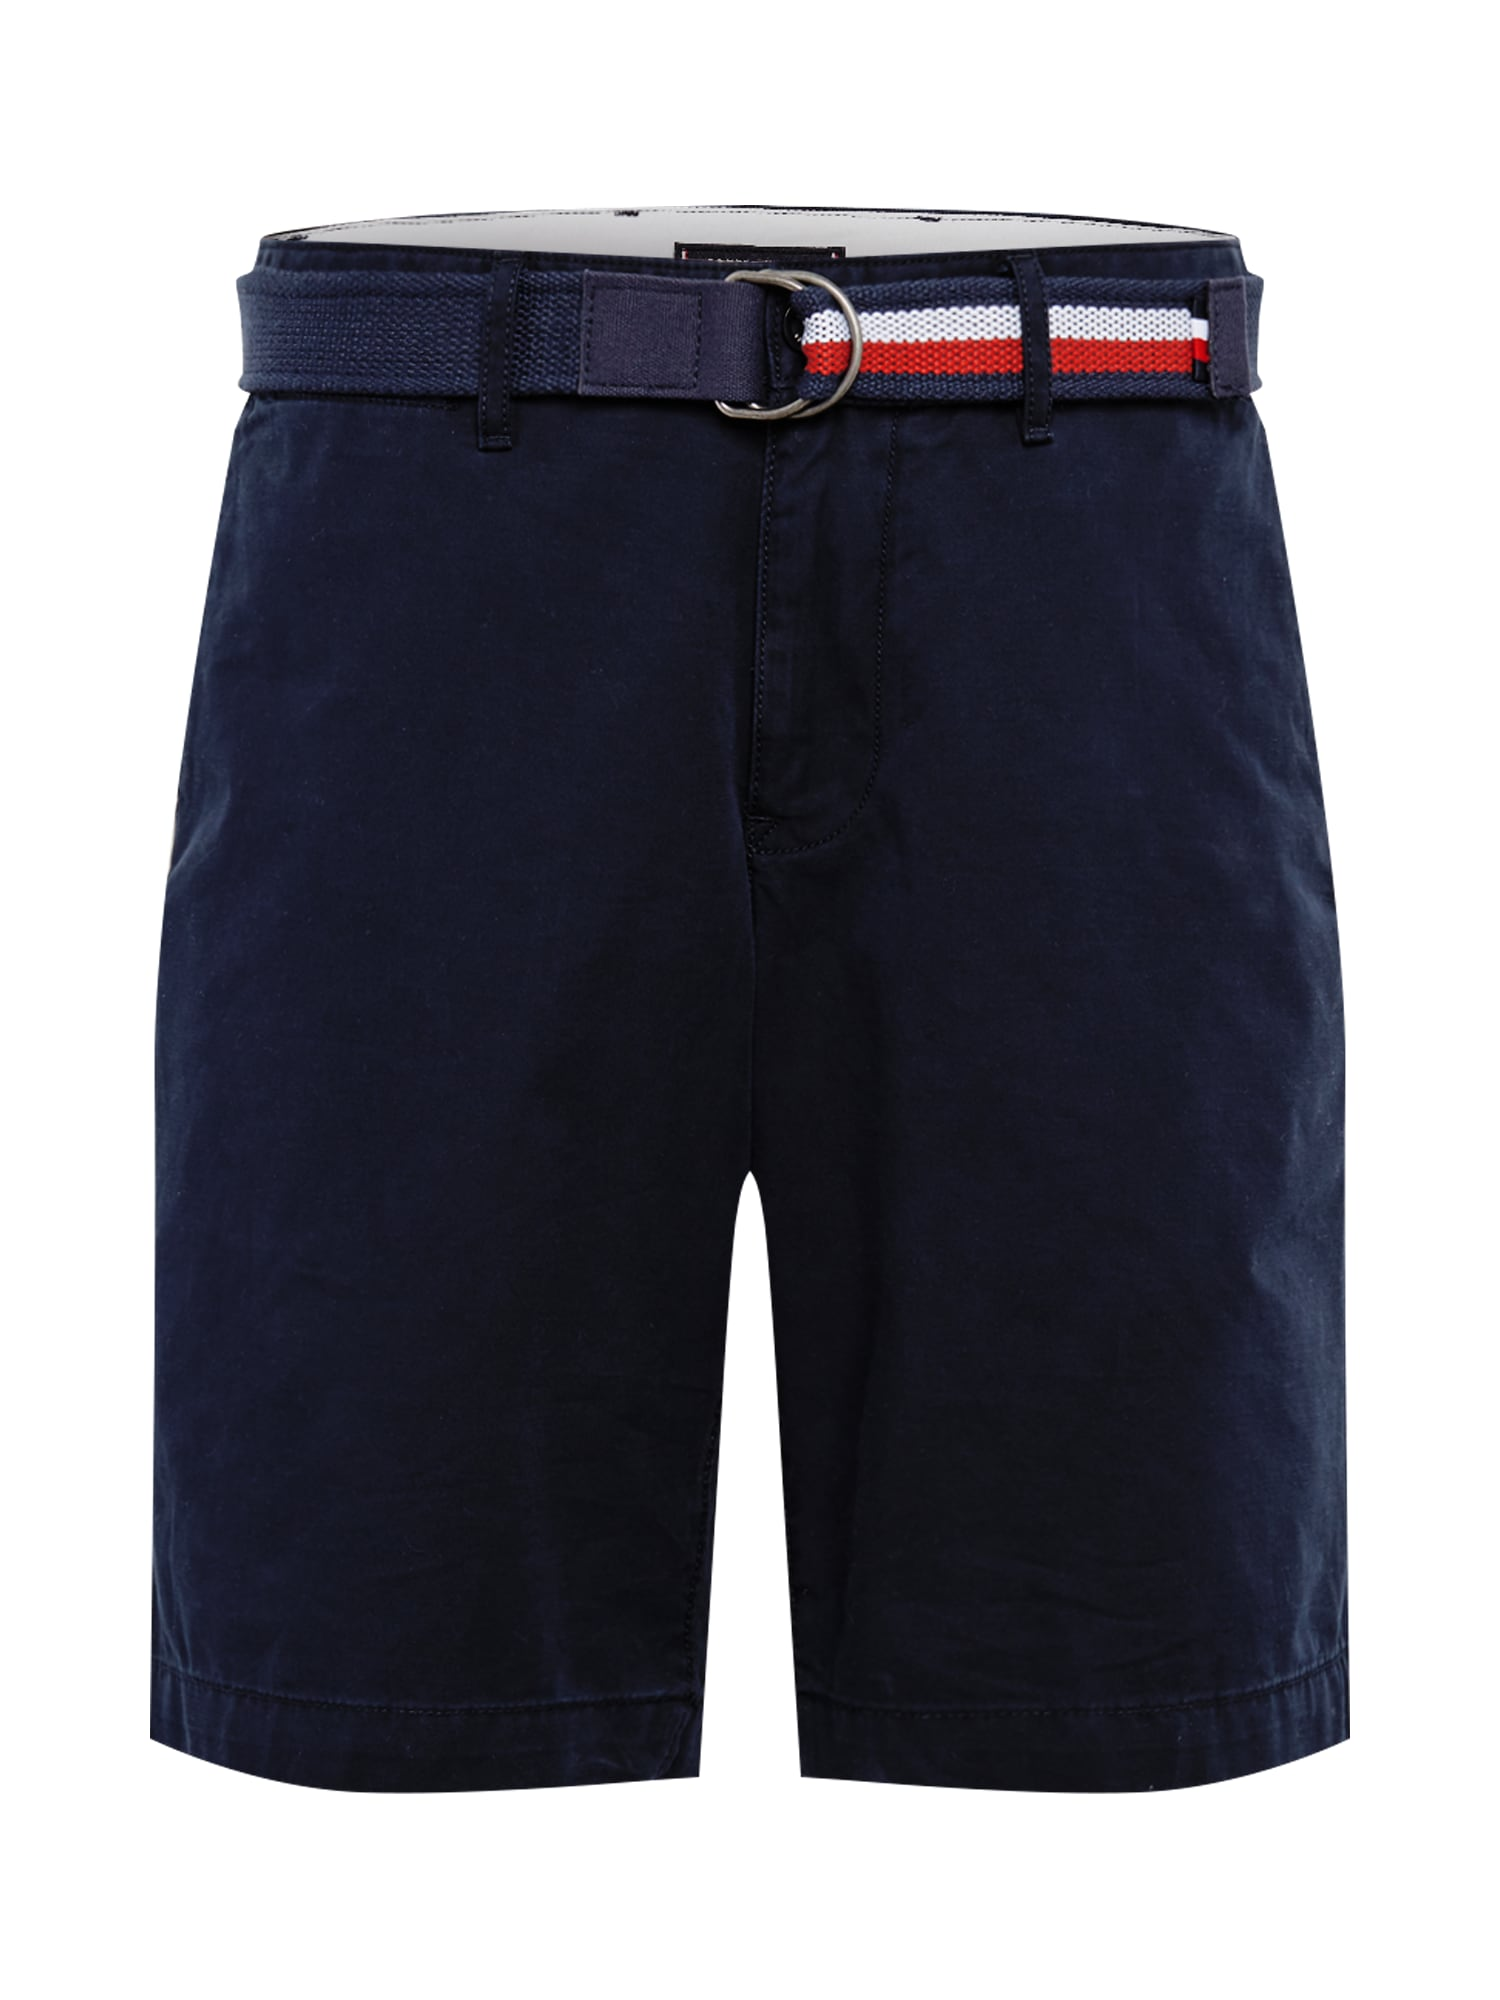 TOMMY HILFIGER Chino kalhoty BROOKLYN SHORT LIGHT TWILL BELT modrá Tommy Hilfiger